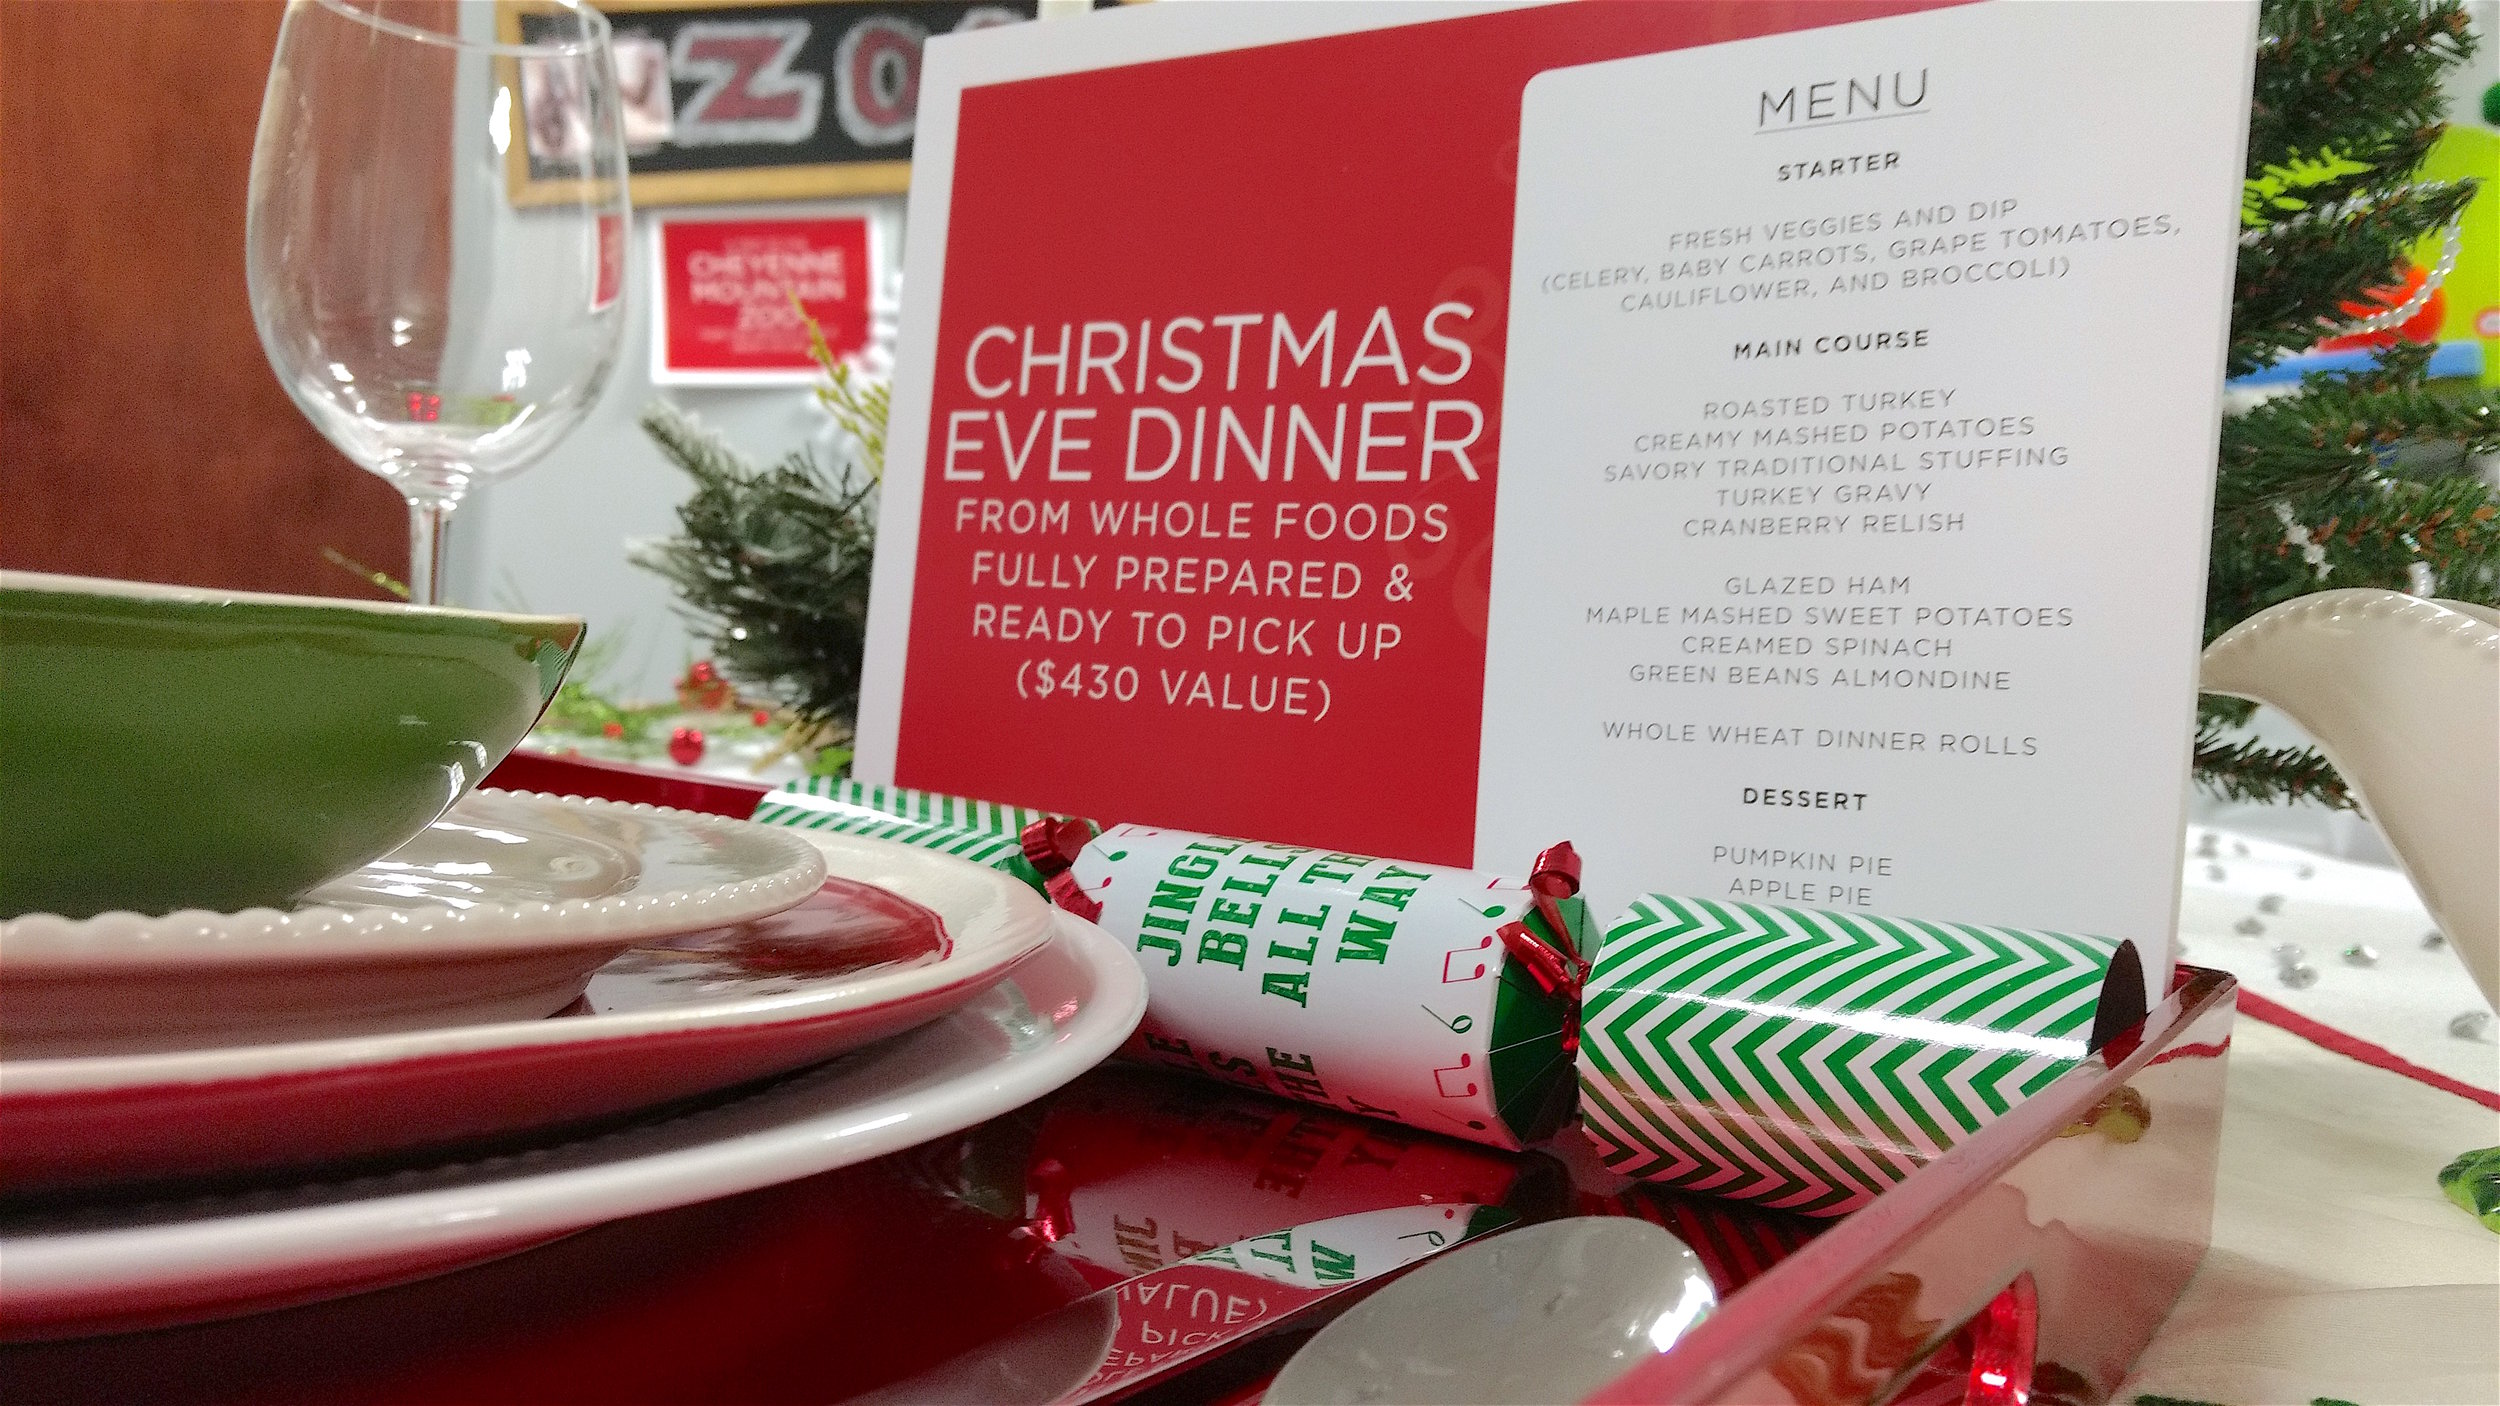 13-Christmas Eve Dinner Menu.jpg